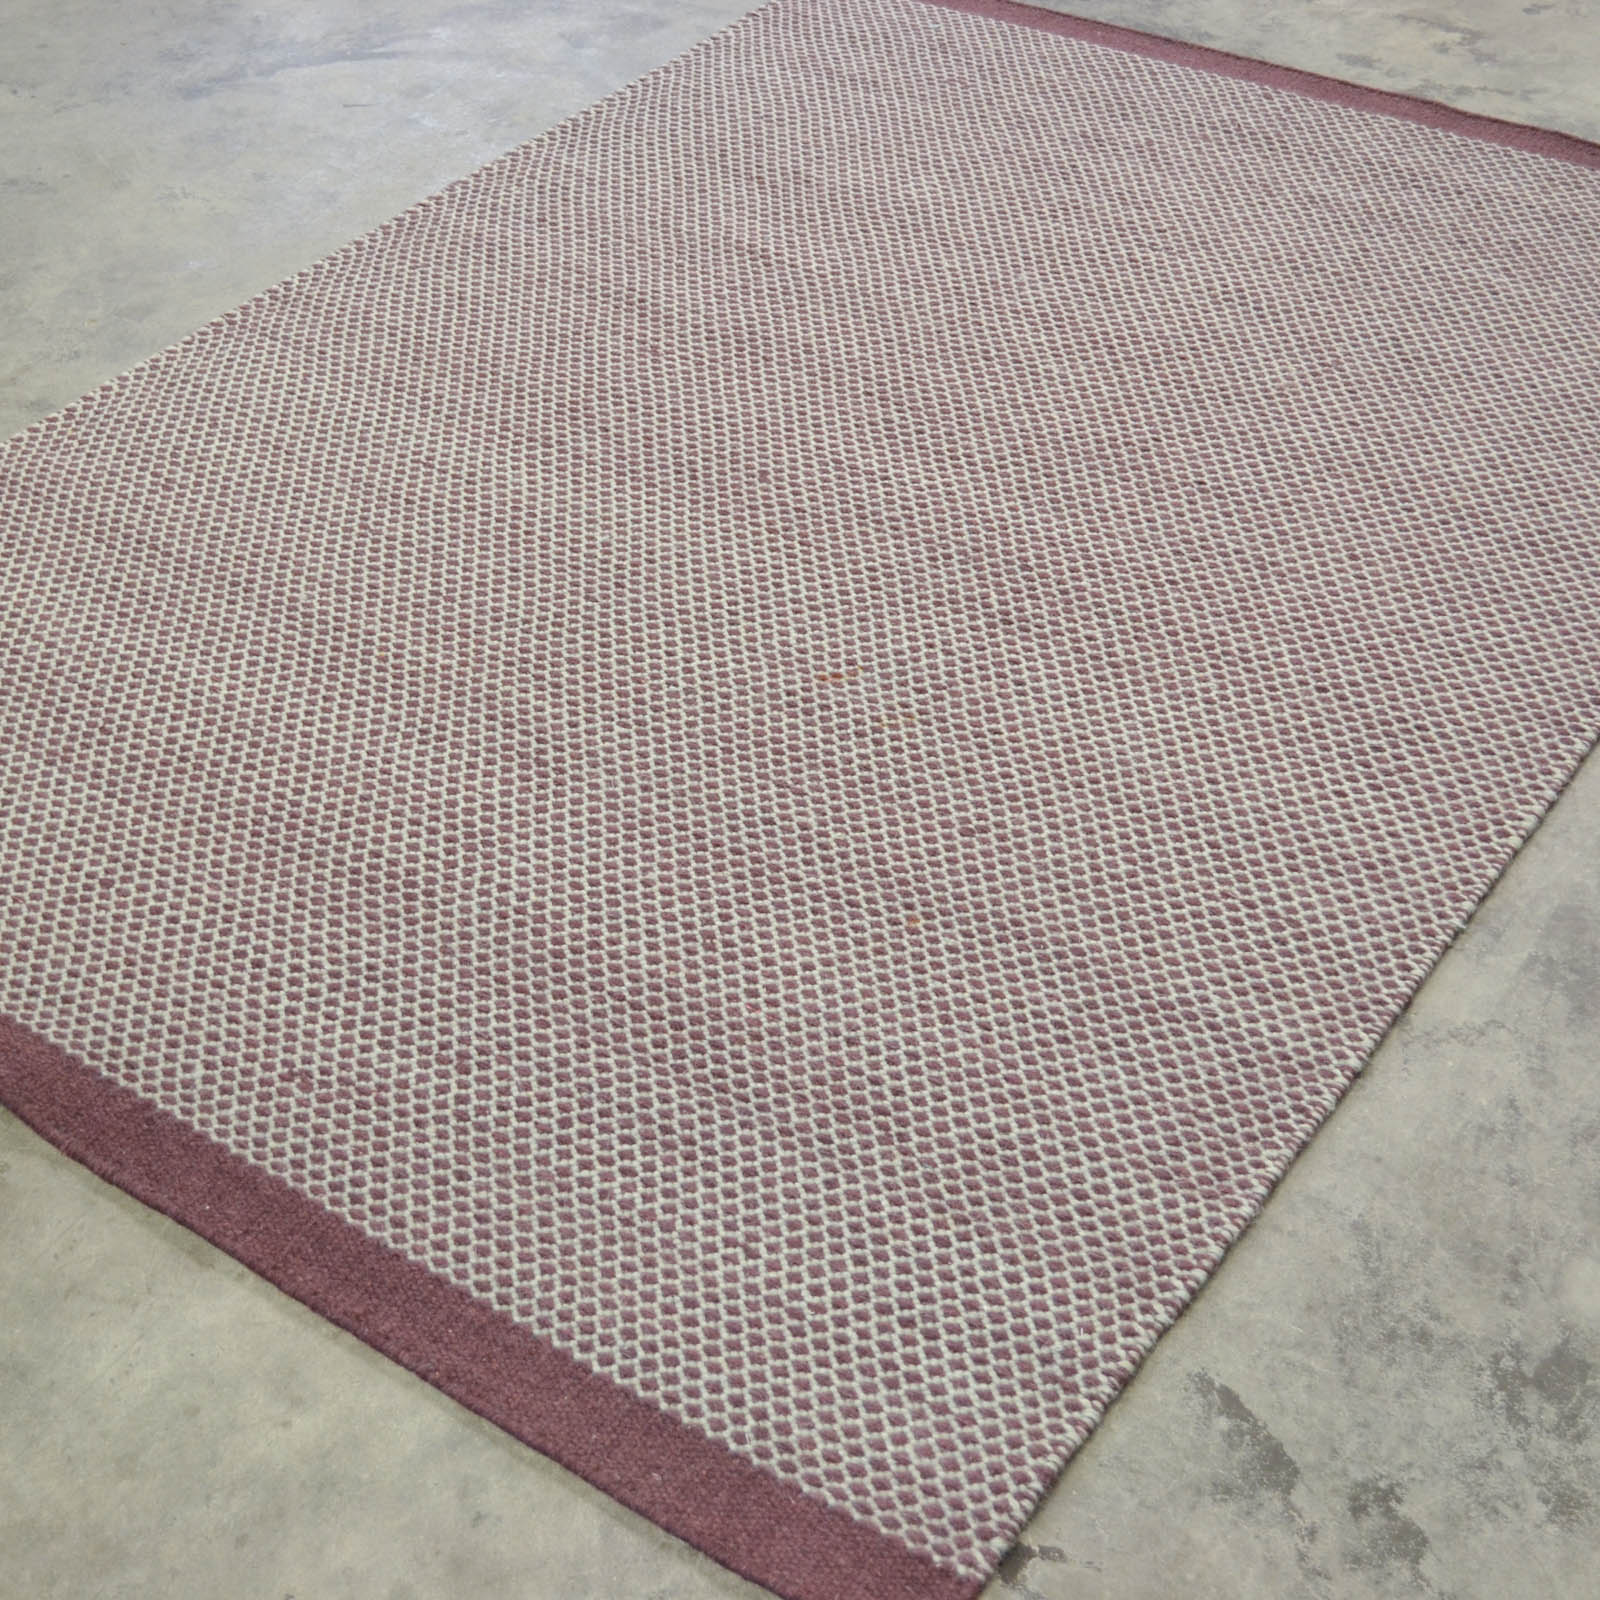 Radja Rugs 47008 by Brink and Campman